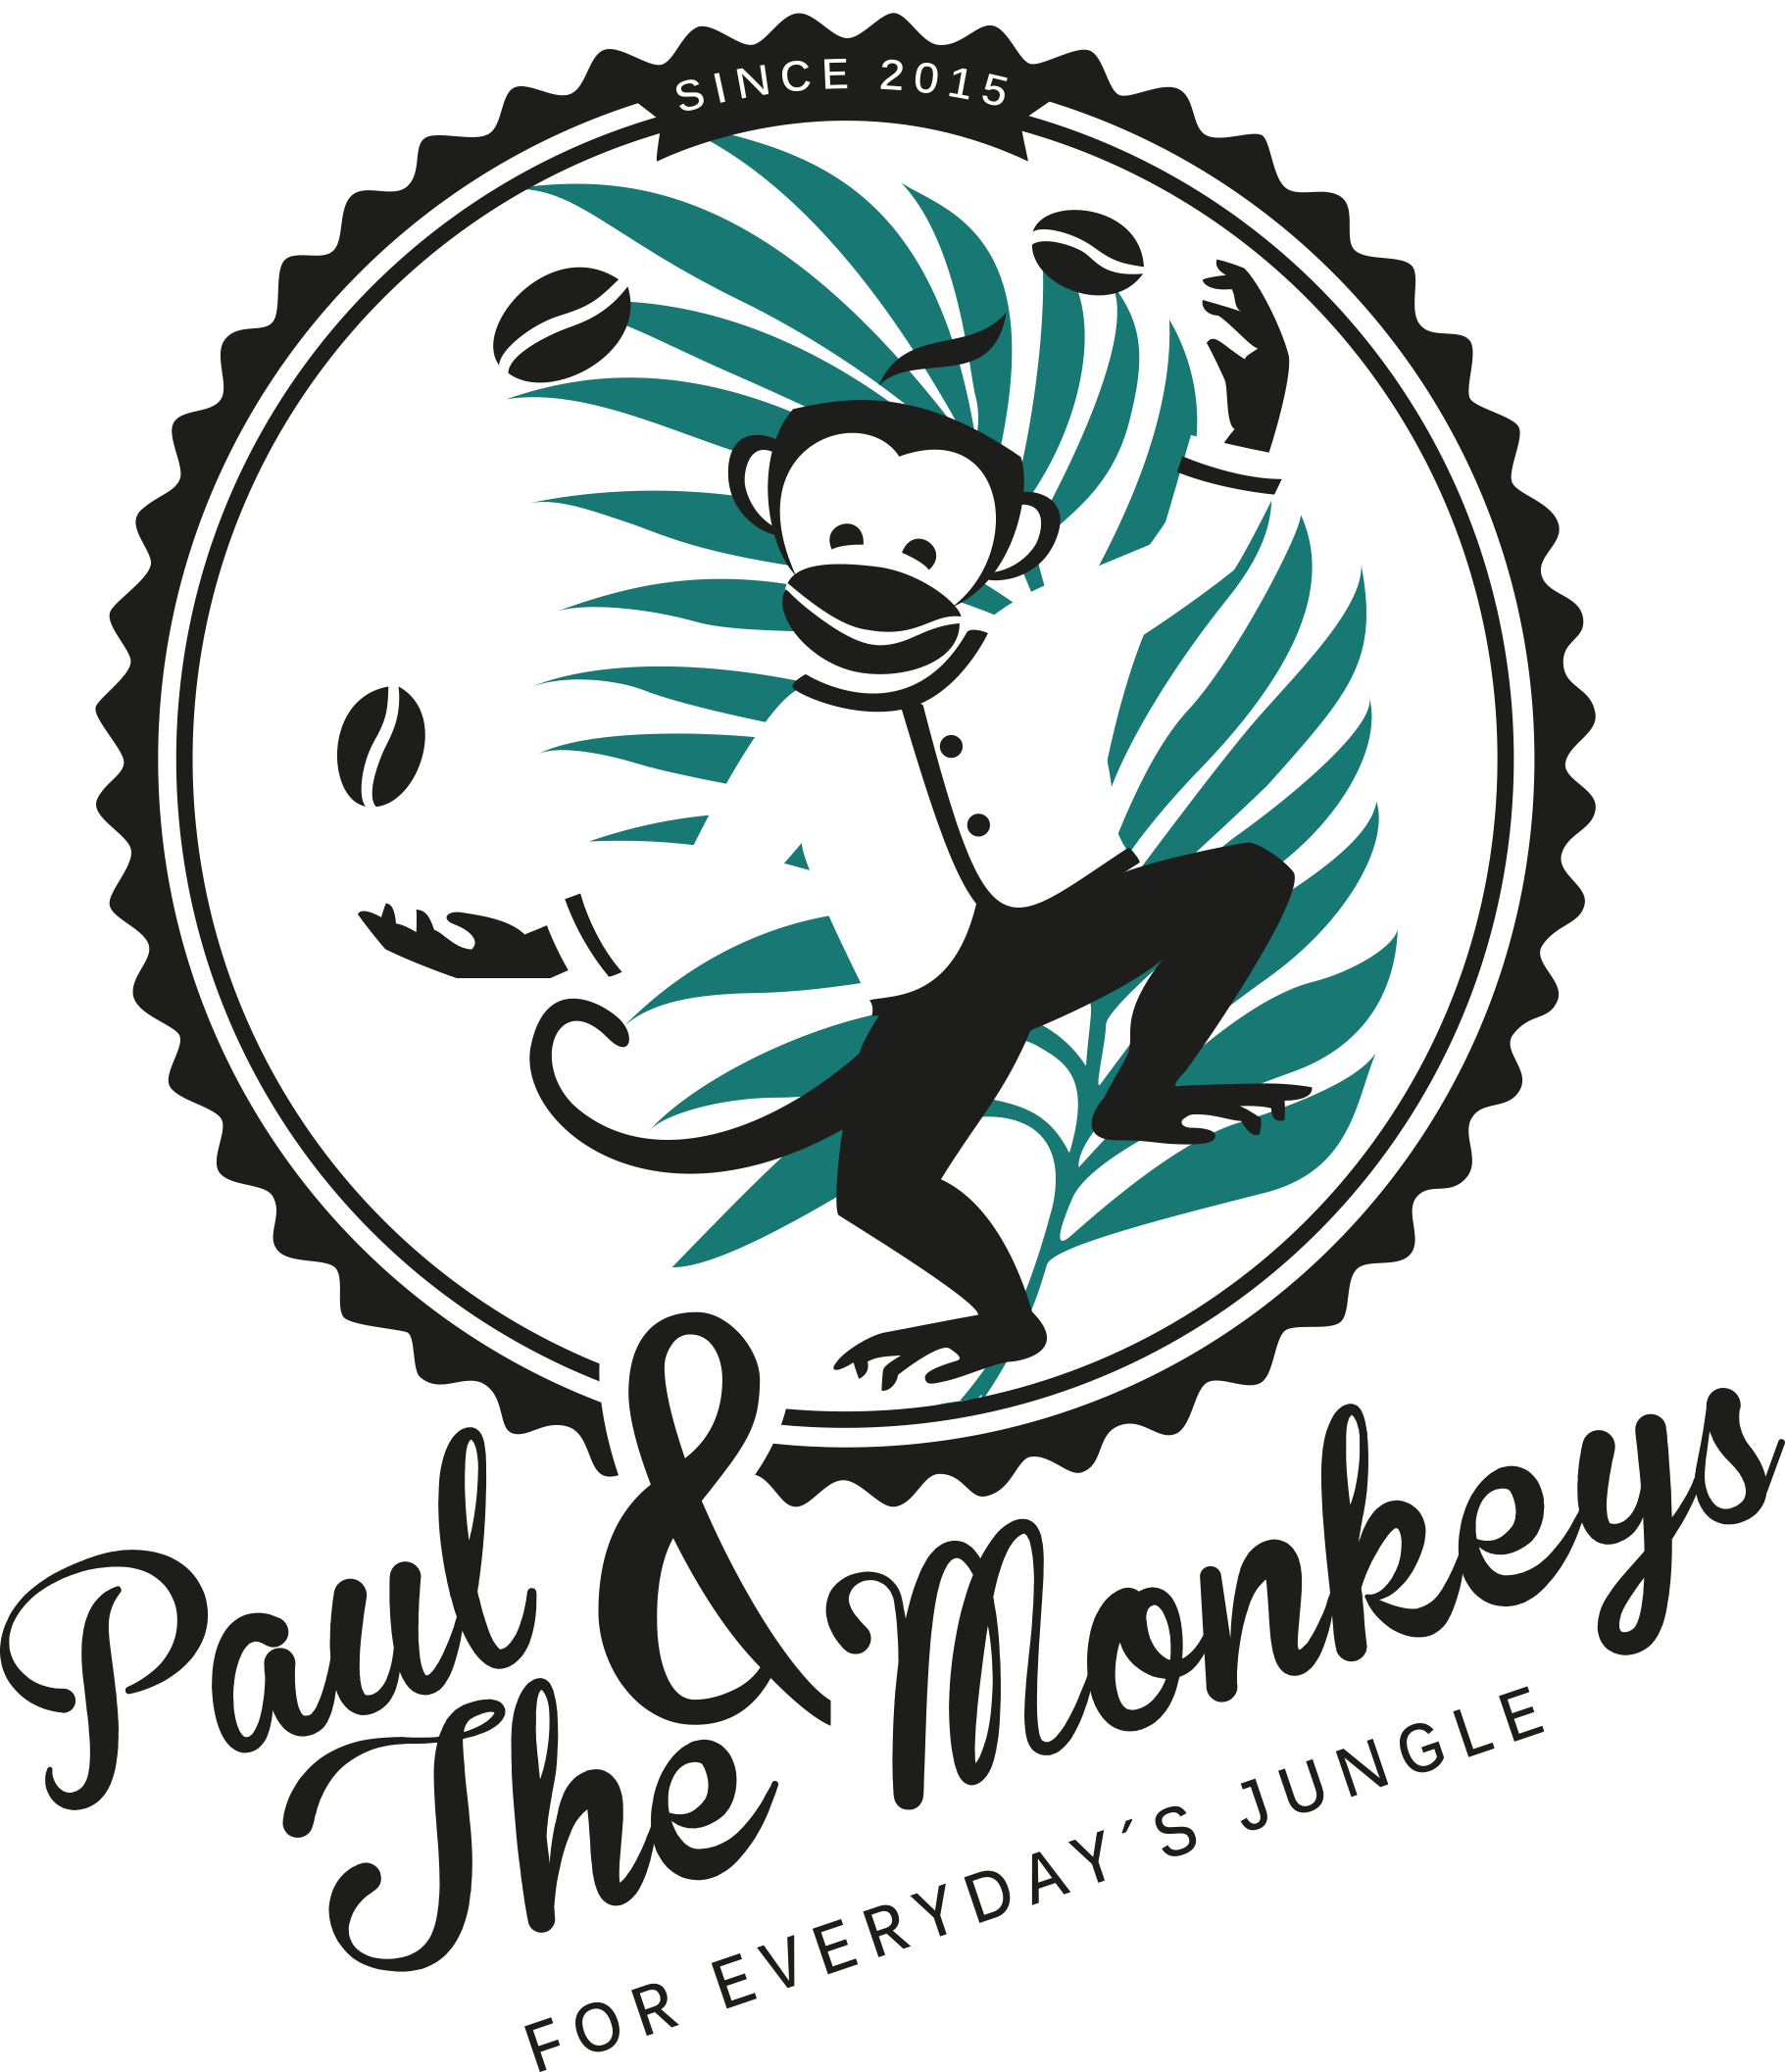 Paul and The Monkeys